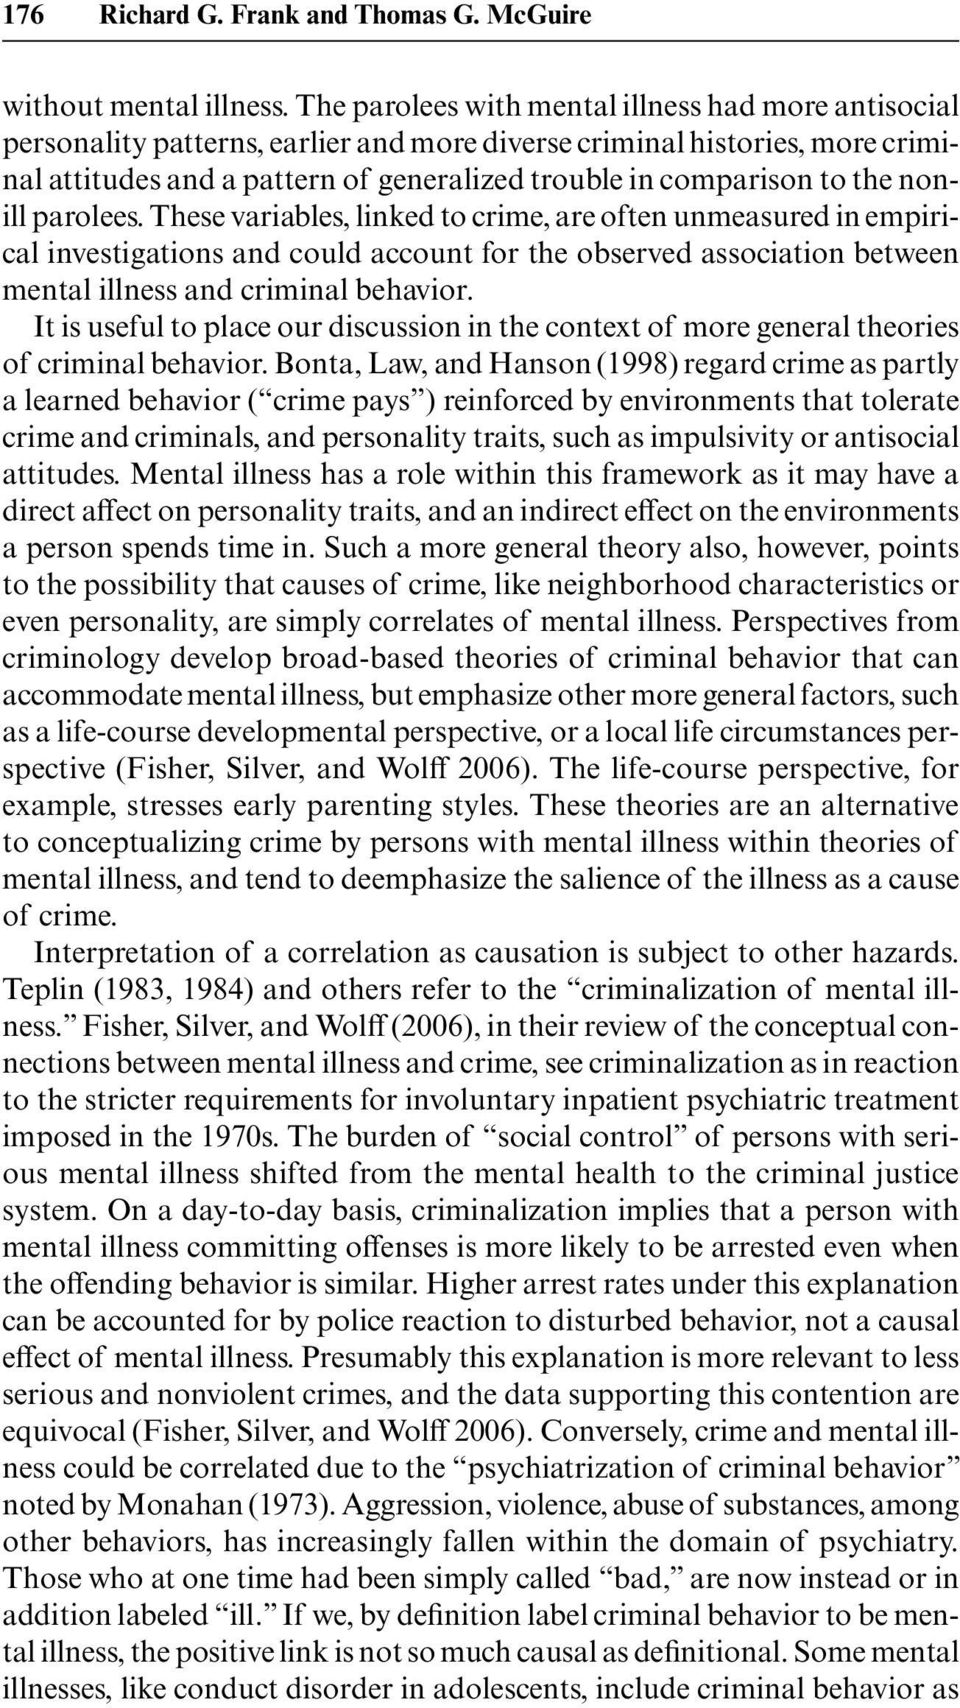 the nonill parolees. These variables, linked to crime, are often unmeasured in empirical investigations and could account for the observed association between mental illness and criminal behavior.